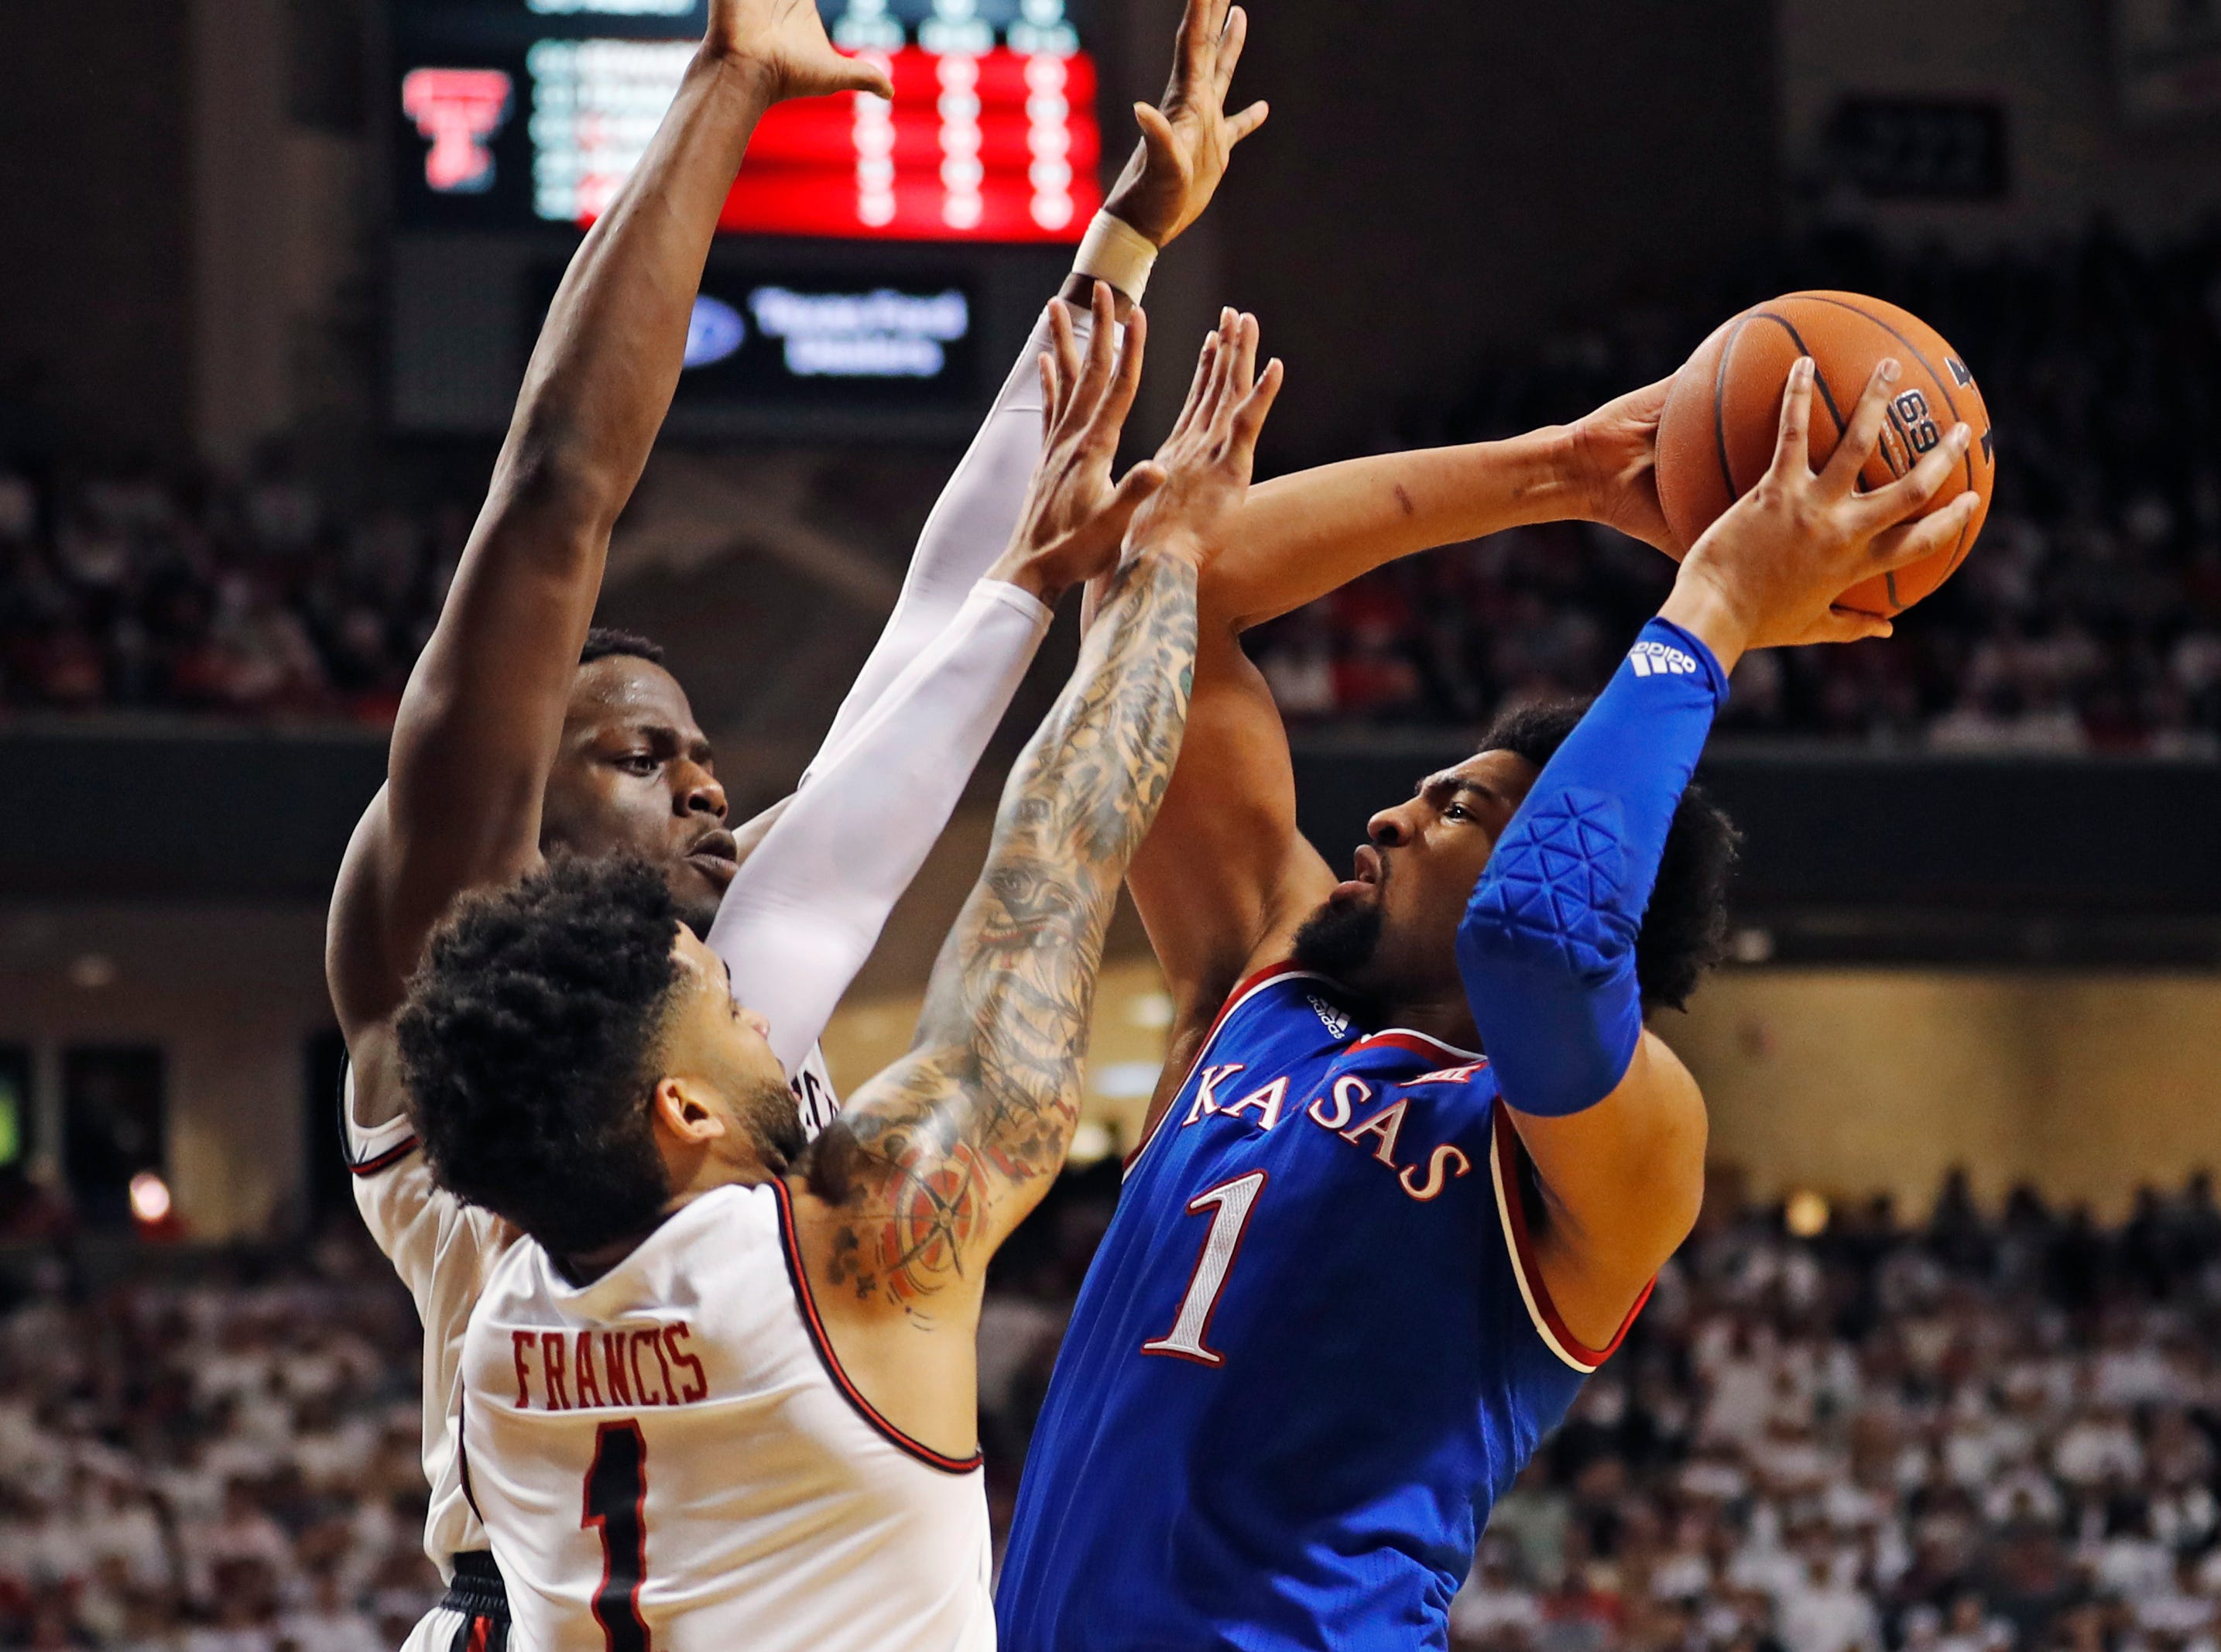 Kansas' Dedric Lawson (1) tries to shoot over Texas Tech's Norense Odiase and Brandon Francis (1) during the first half of an NCAA college basketball game Saturday, Feb. 23, 2019, in Lubbock, Texas. (AP Photo/Brad Tollefson)